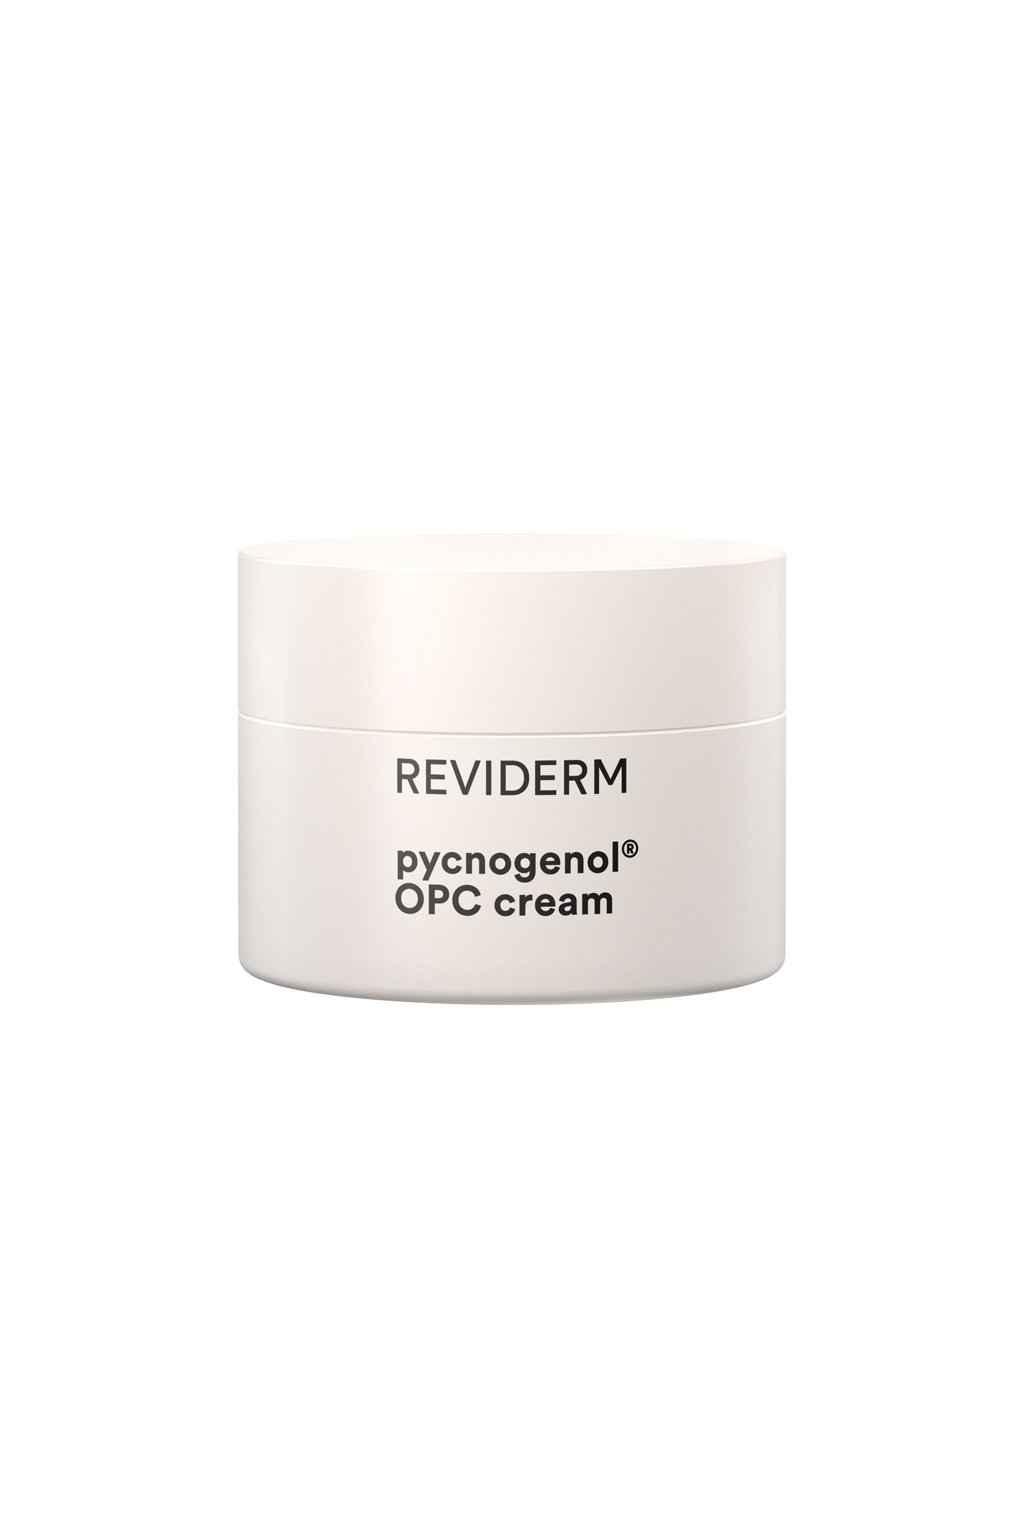 pycnogenol OPC cream | 50 ml